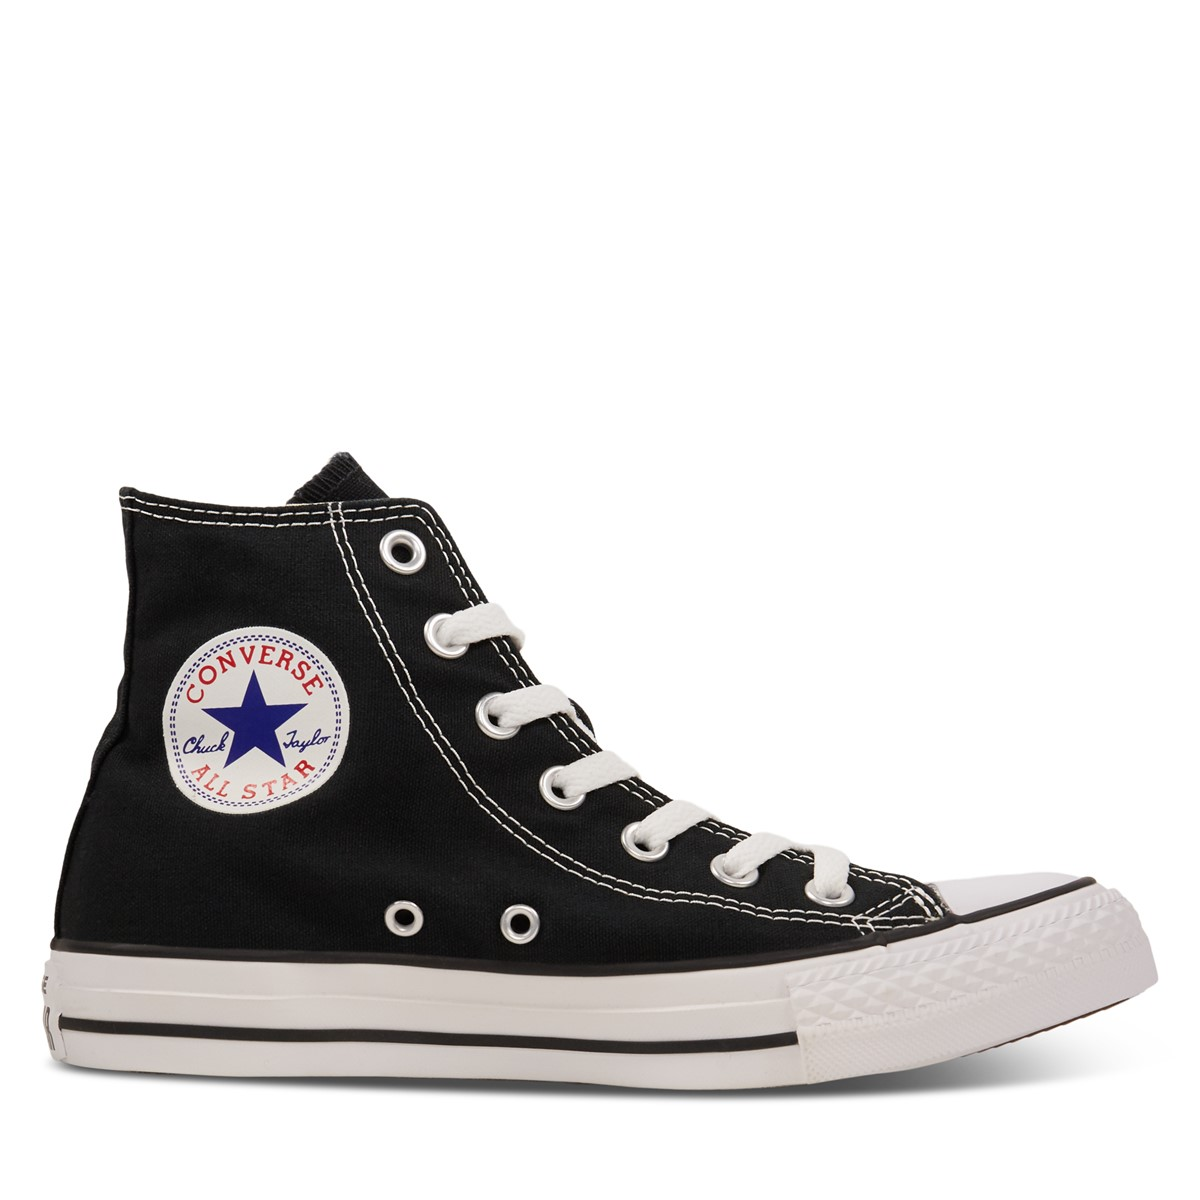 Women's Chuck Taylor Core Hi-Top Black Sneakers